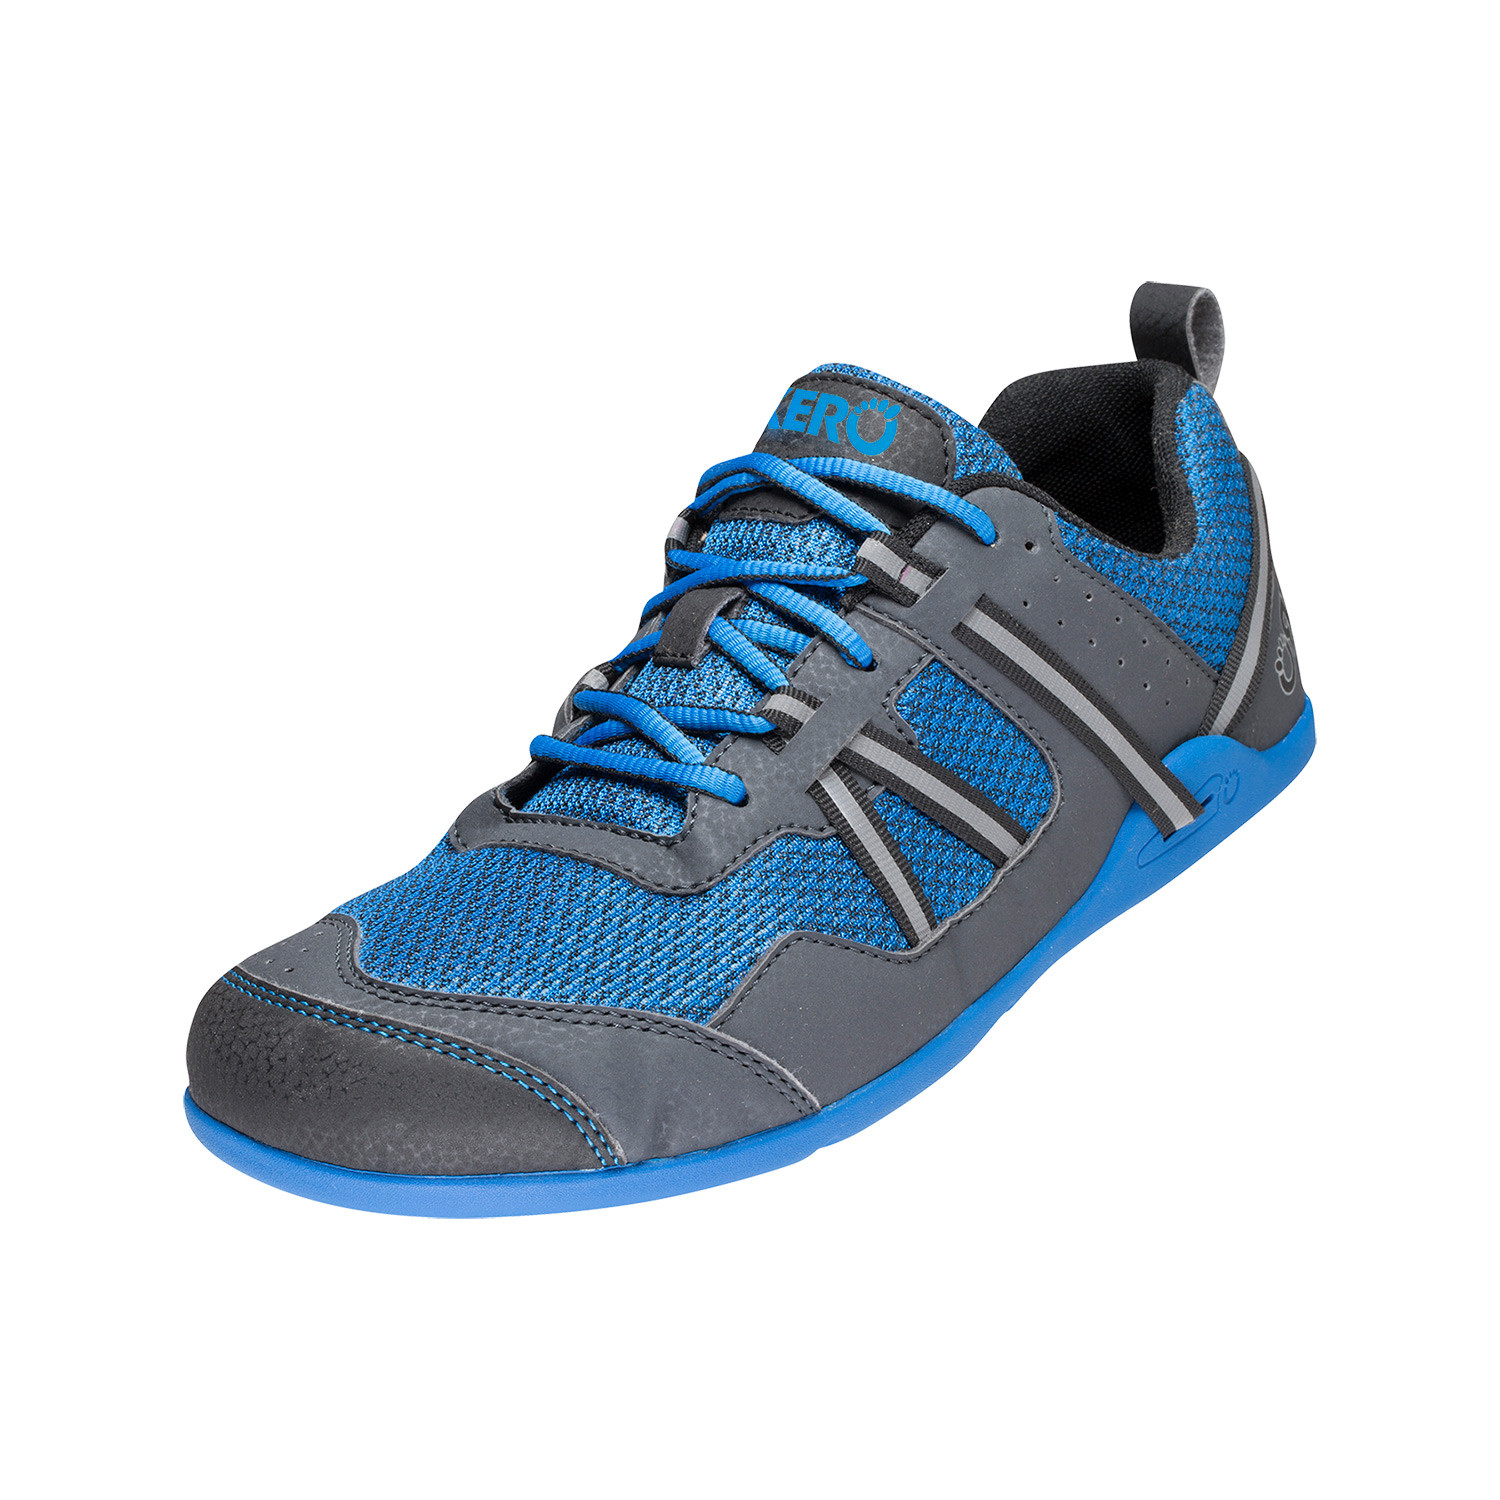 online retailer 599b0 4a790 XERO // Prio // Blue + Black (US: 10.5) - Xero Shoes - Touch ...